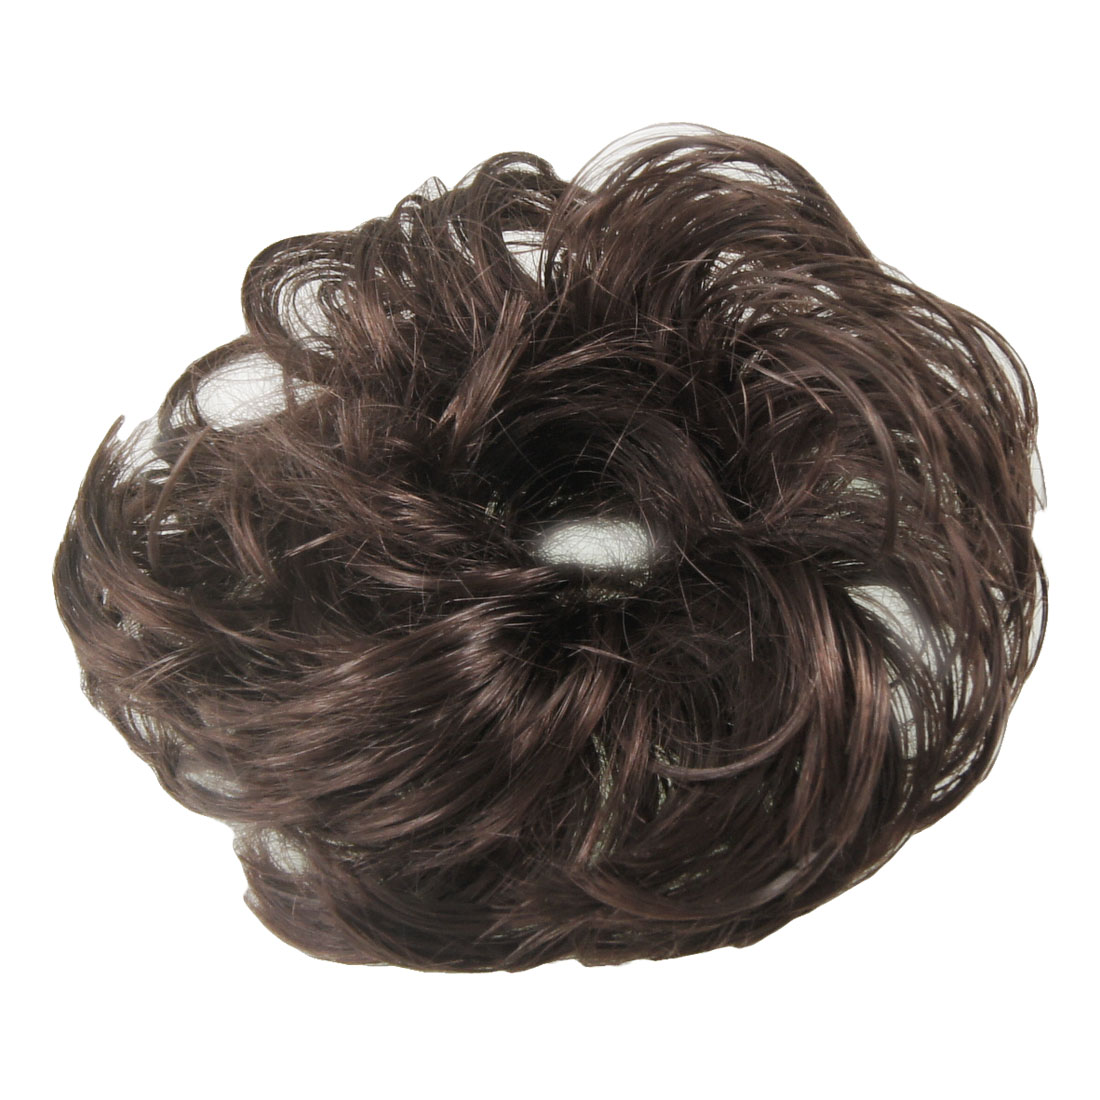 Unique Bargains Medium Dark Brown Faux Hair Wedding Elastic Band Curly Hairpiece Wig Bun